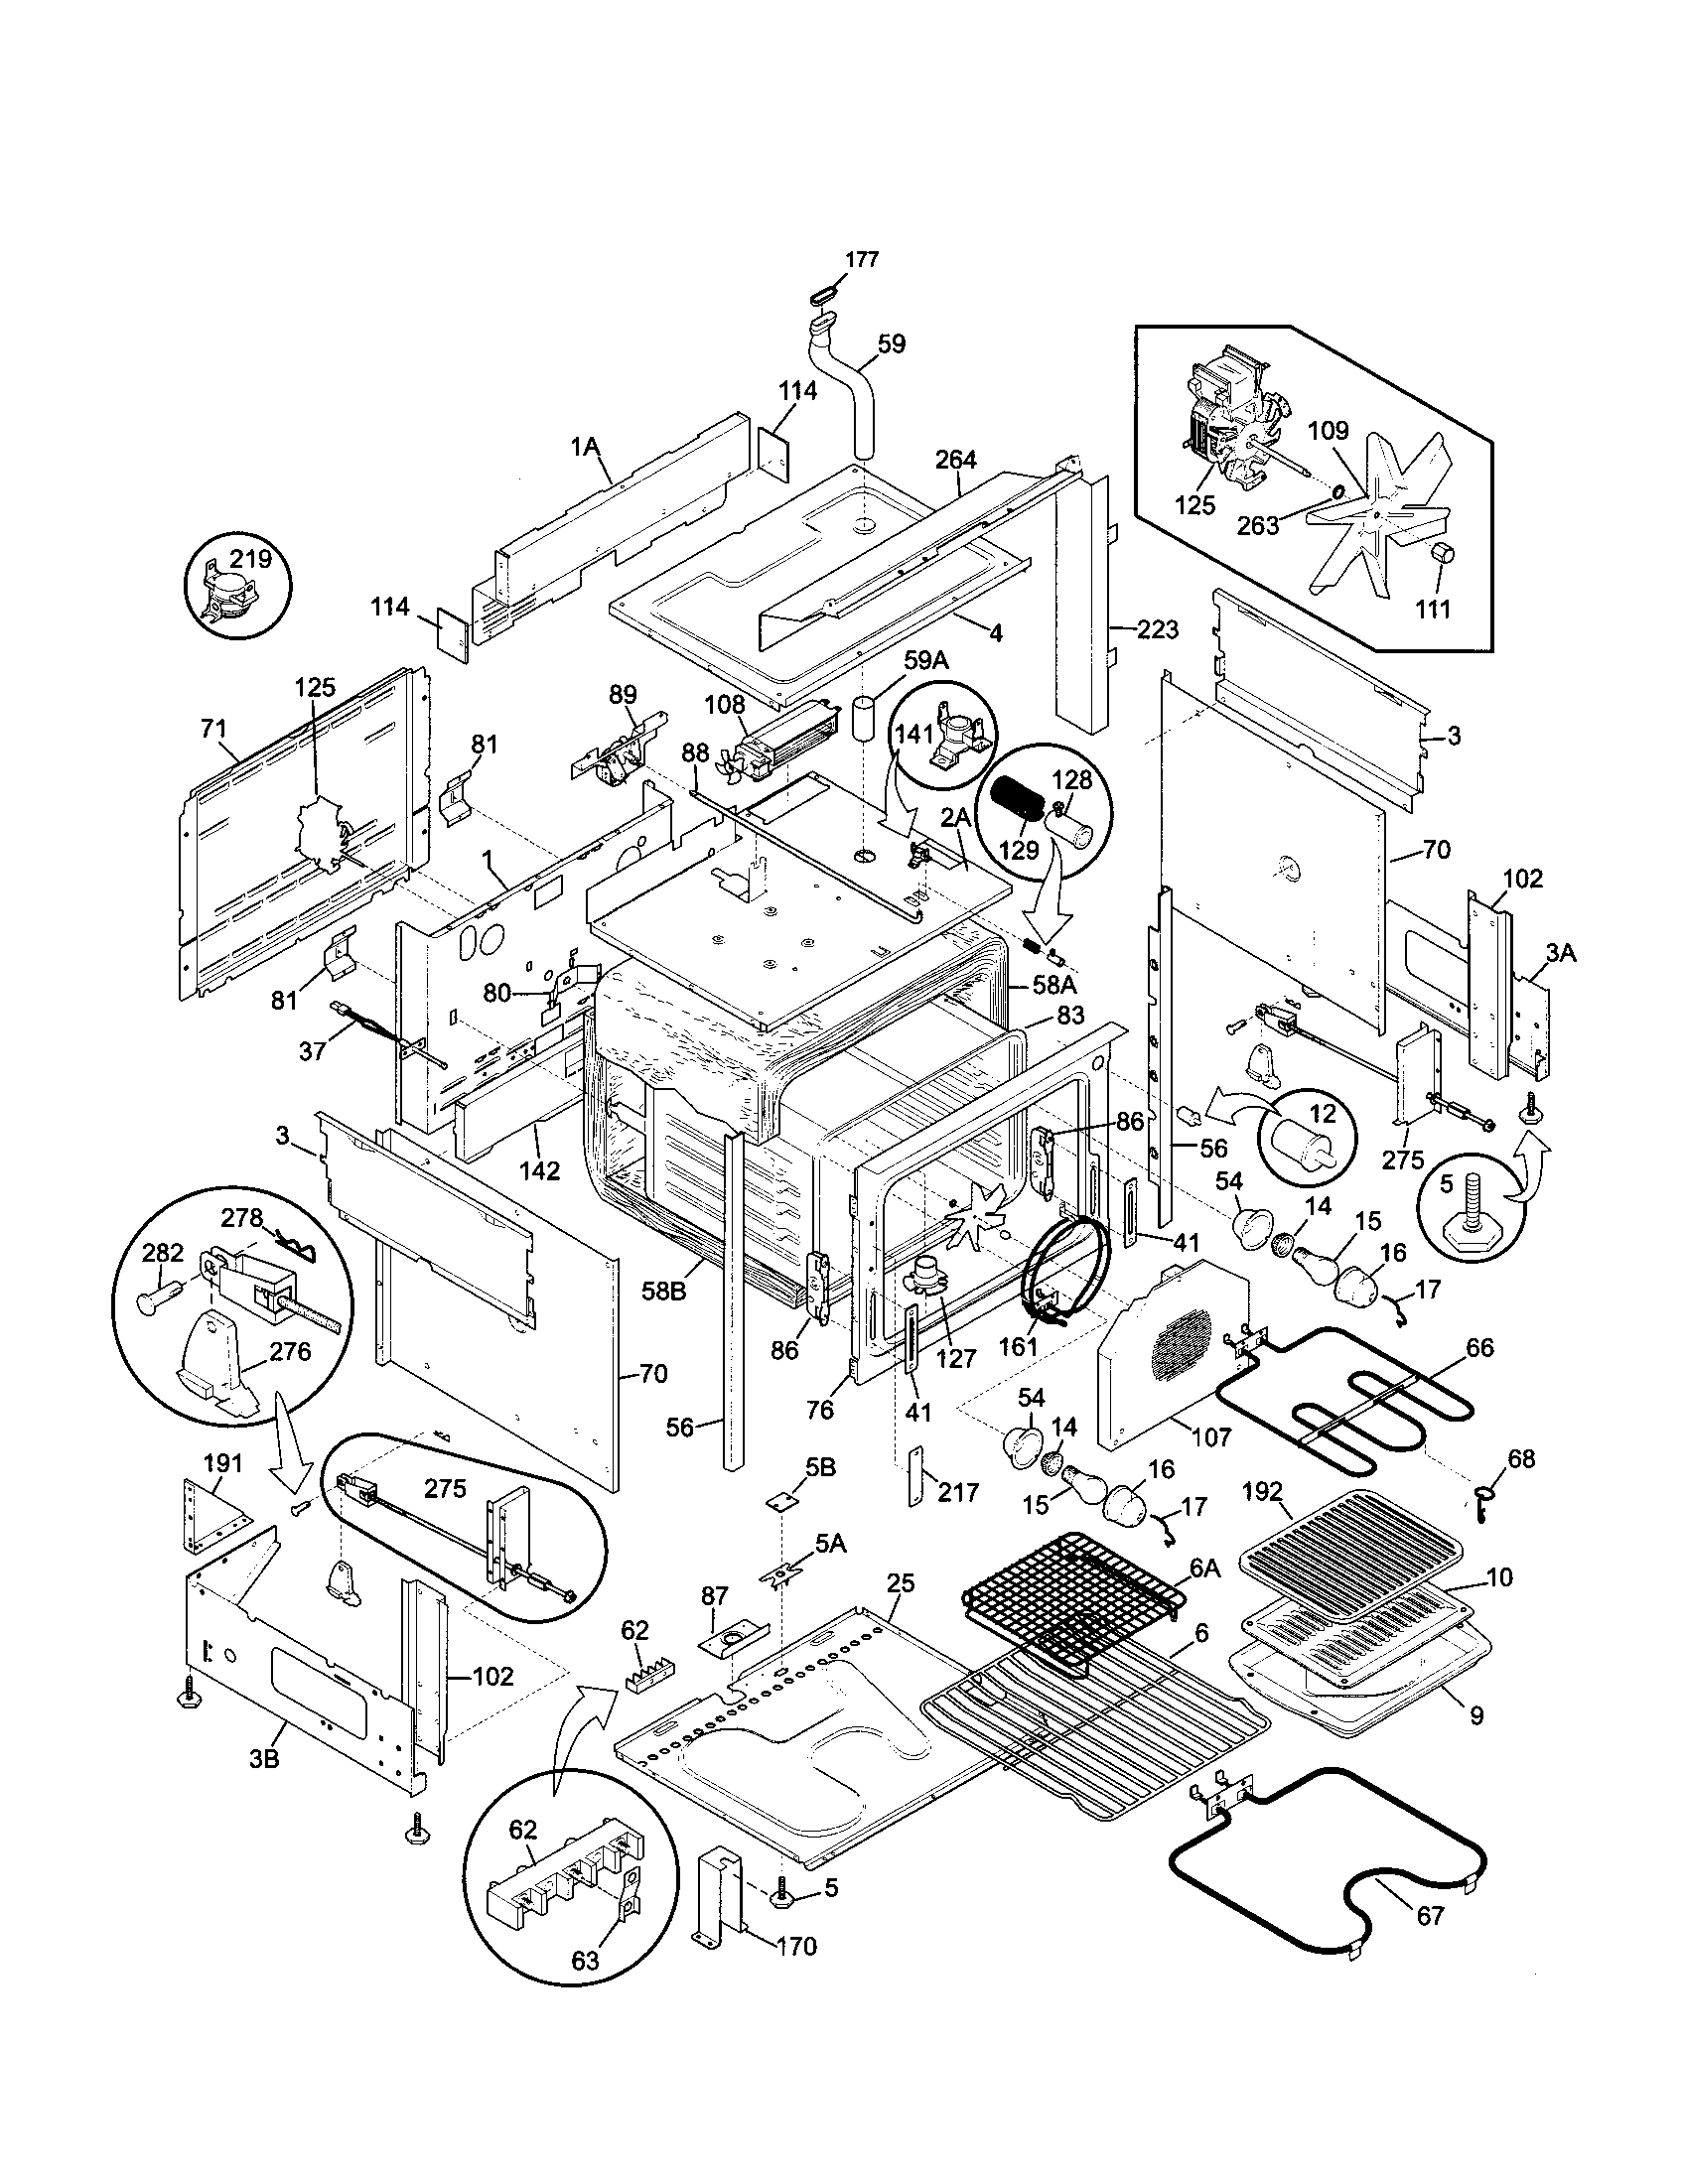 Ed D D F Ea E A A B Wp Dishwasher Fuses additionally Connections likewise Oven Parts furthermore K also I Have A Kenmore Elite Ultrawash Dishwasher Model No K Pertaining To Kenmore Elite Dishwasher Parts Diagram. on kenmore elite dishwasher 665 diagram